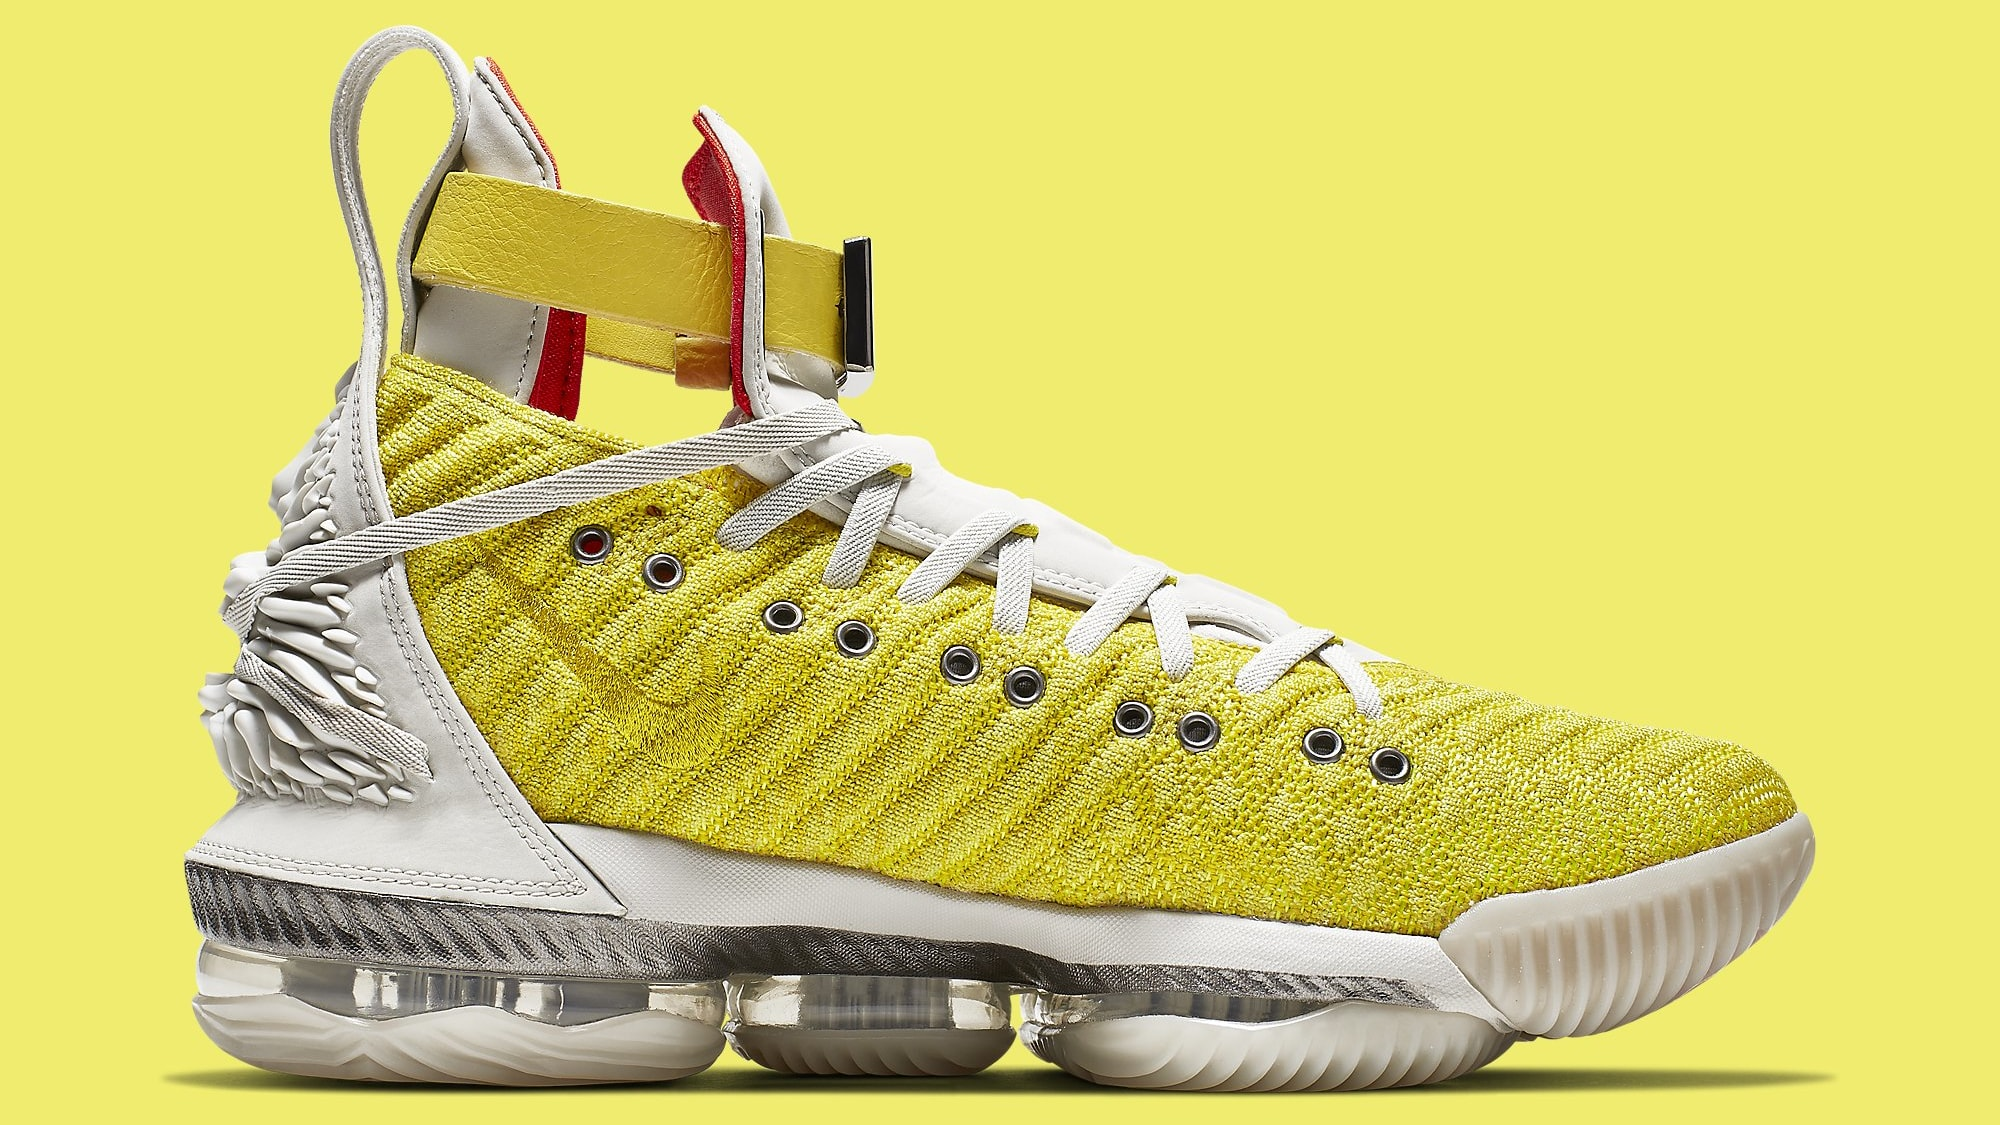 cheap for discount 14c76 b7095 Nike LeBron 16 HFR Bright Citron Release Date CI1145- 700 ...